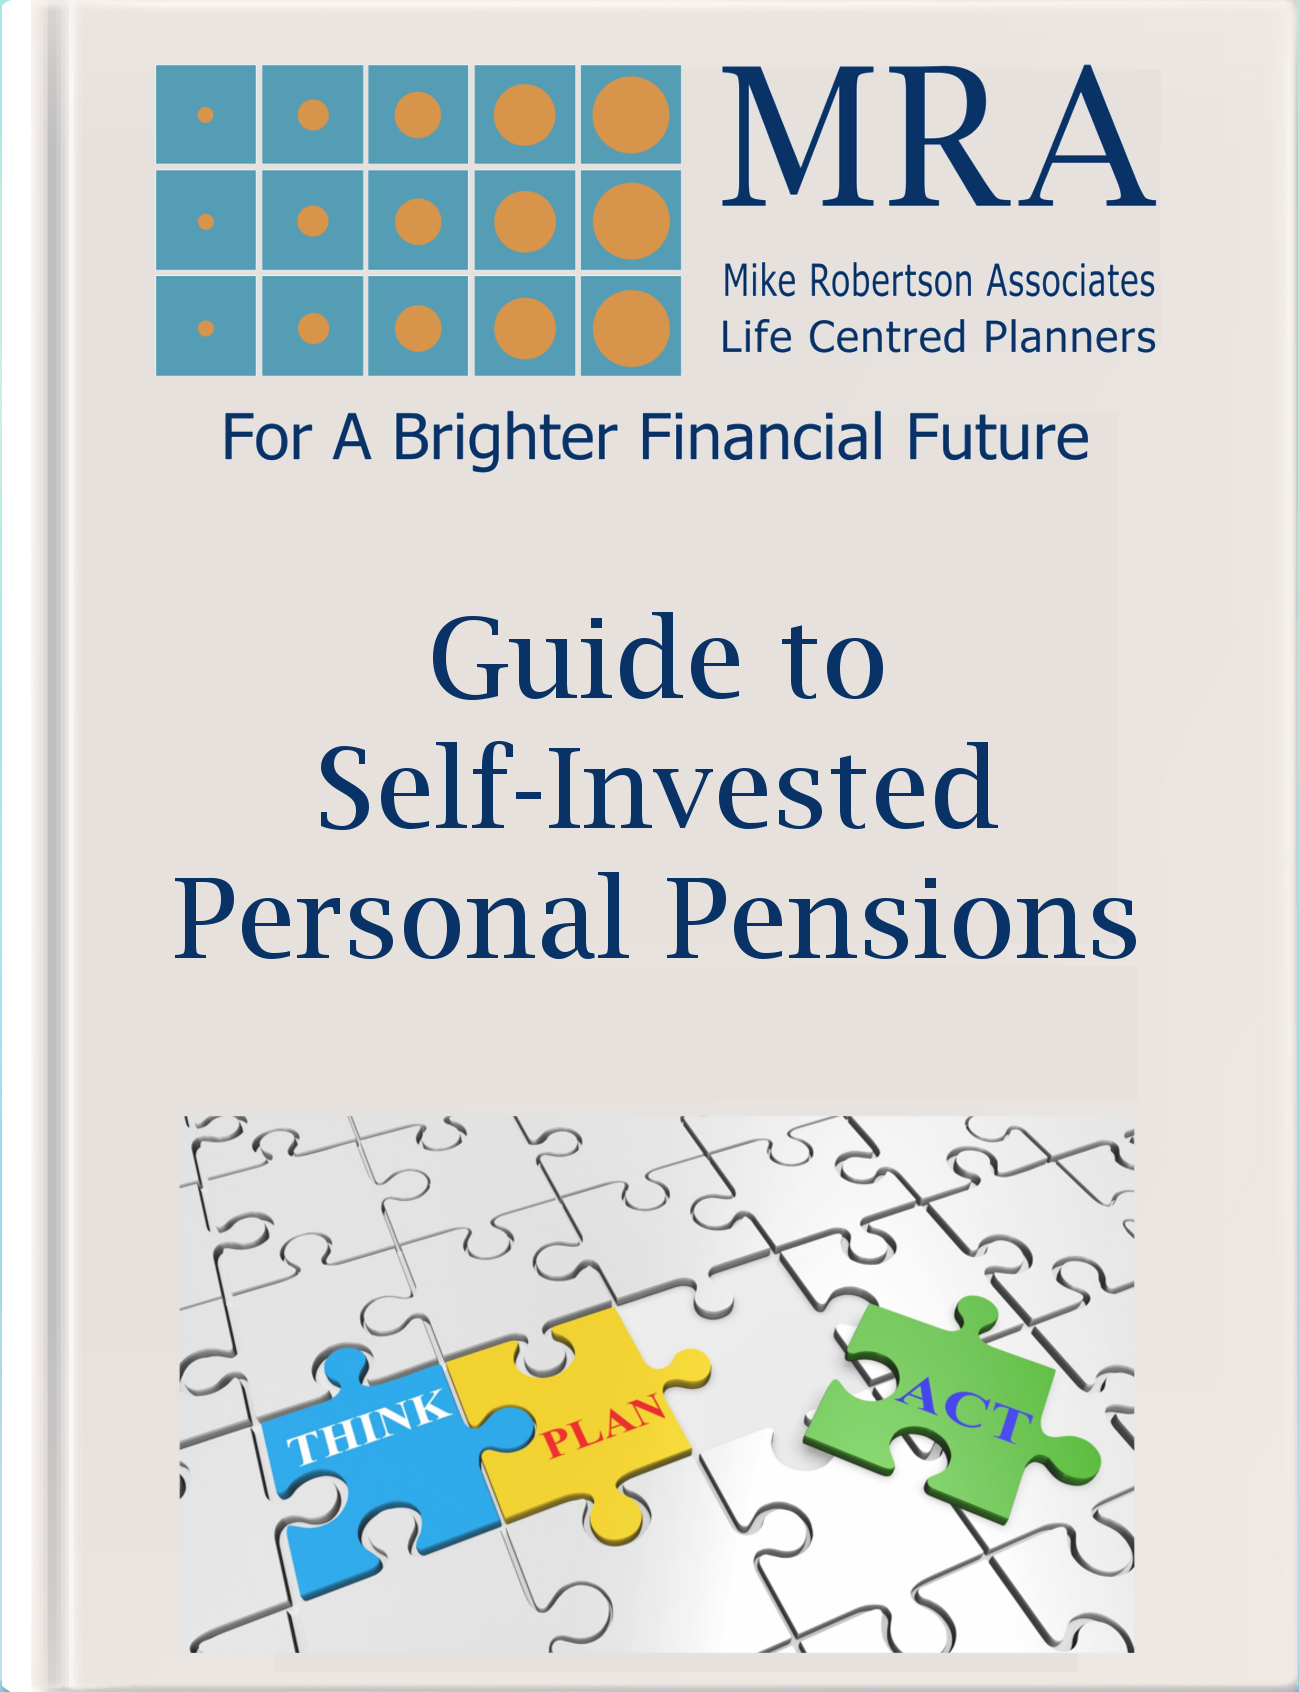 Guide to Self-Invested Personal Pension